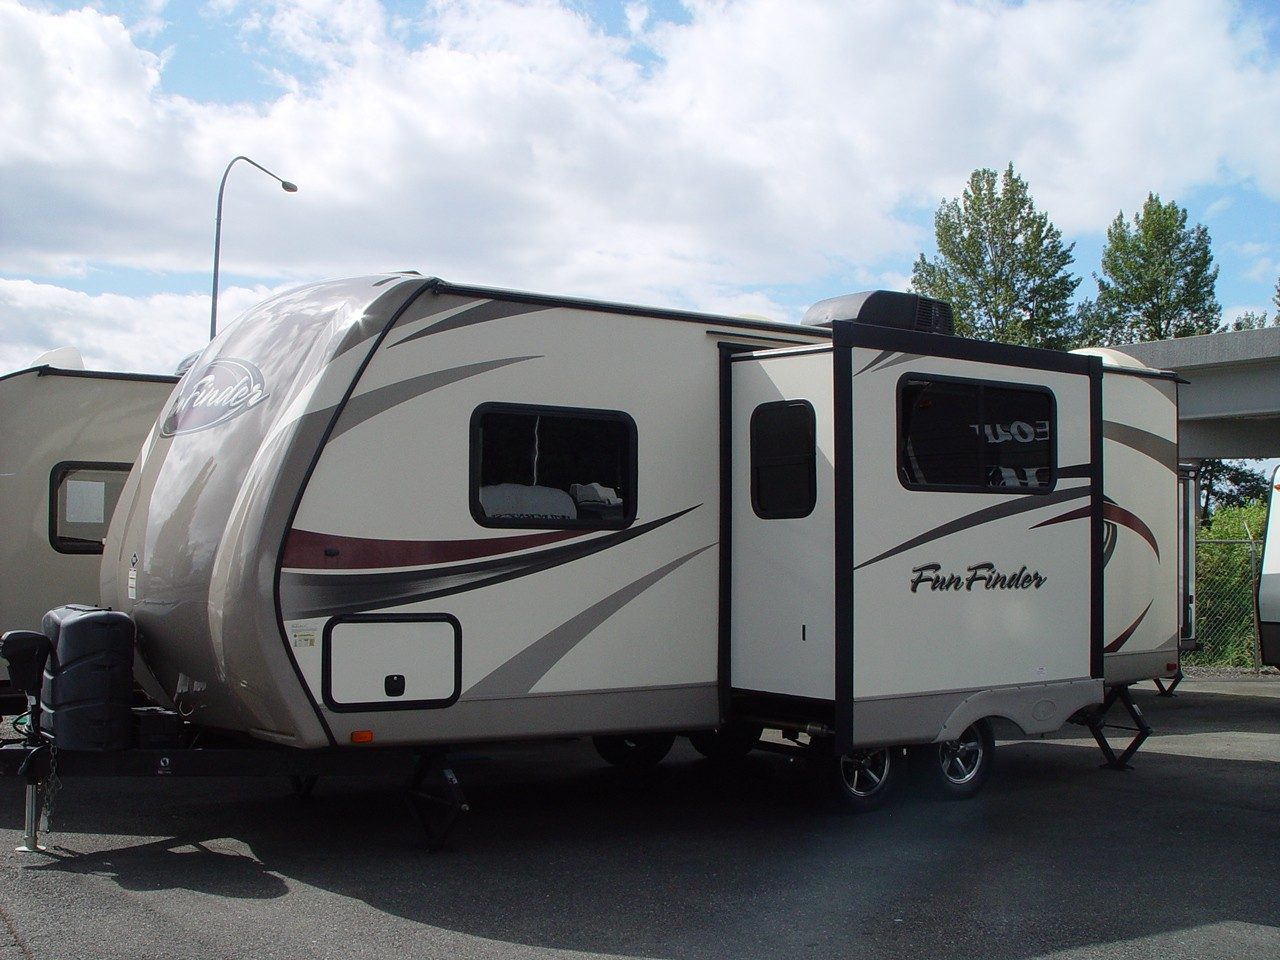 Kent RV, WA, Used, Recreational Vehicle, Financing, Motorhome